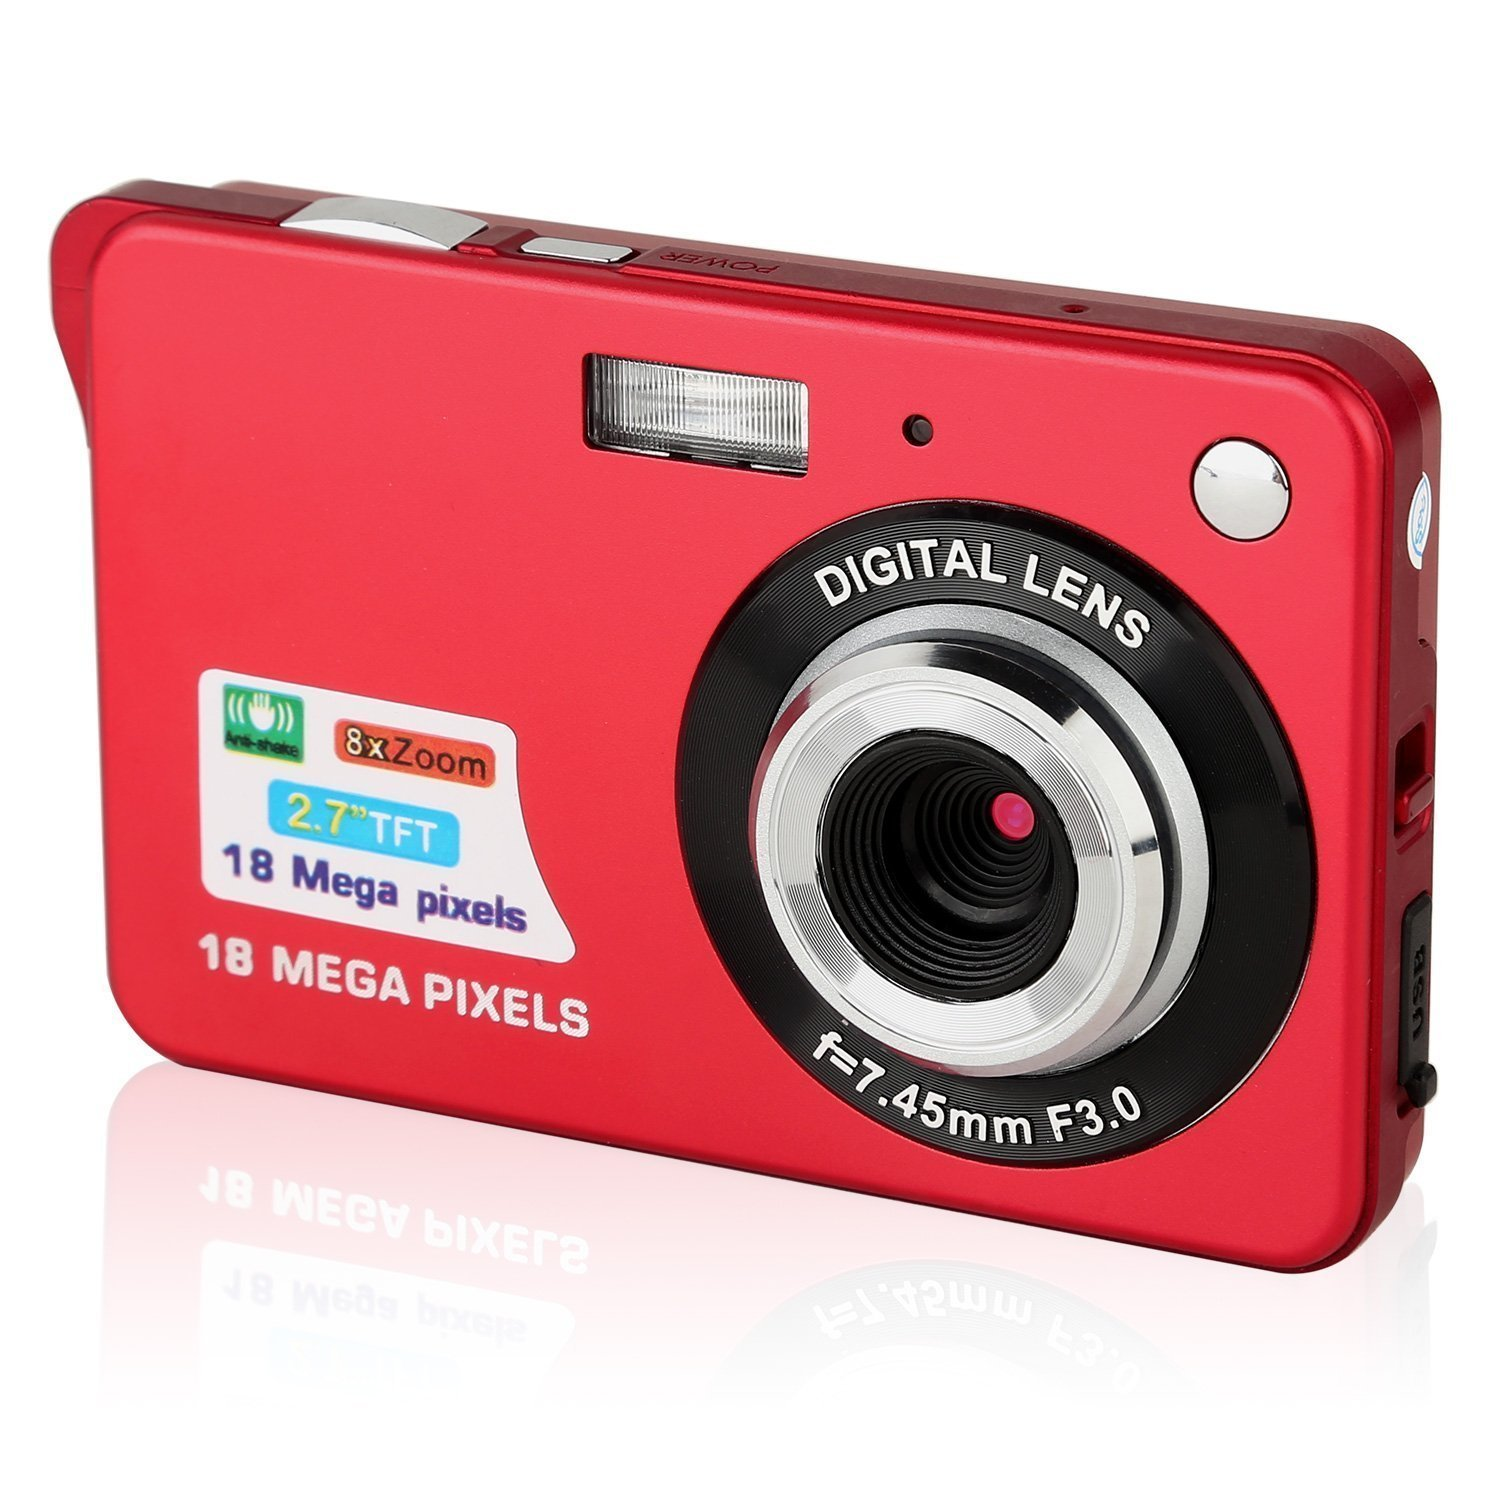 PowerLead 2.7 inch TFT LCD HD fotocamere digitale mini macchina fotografica-Rosso … product image